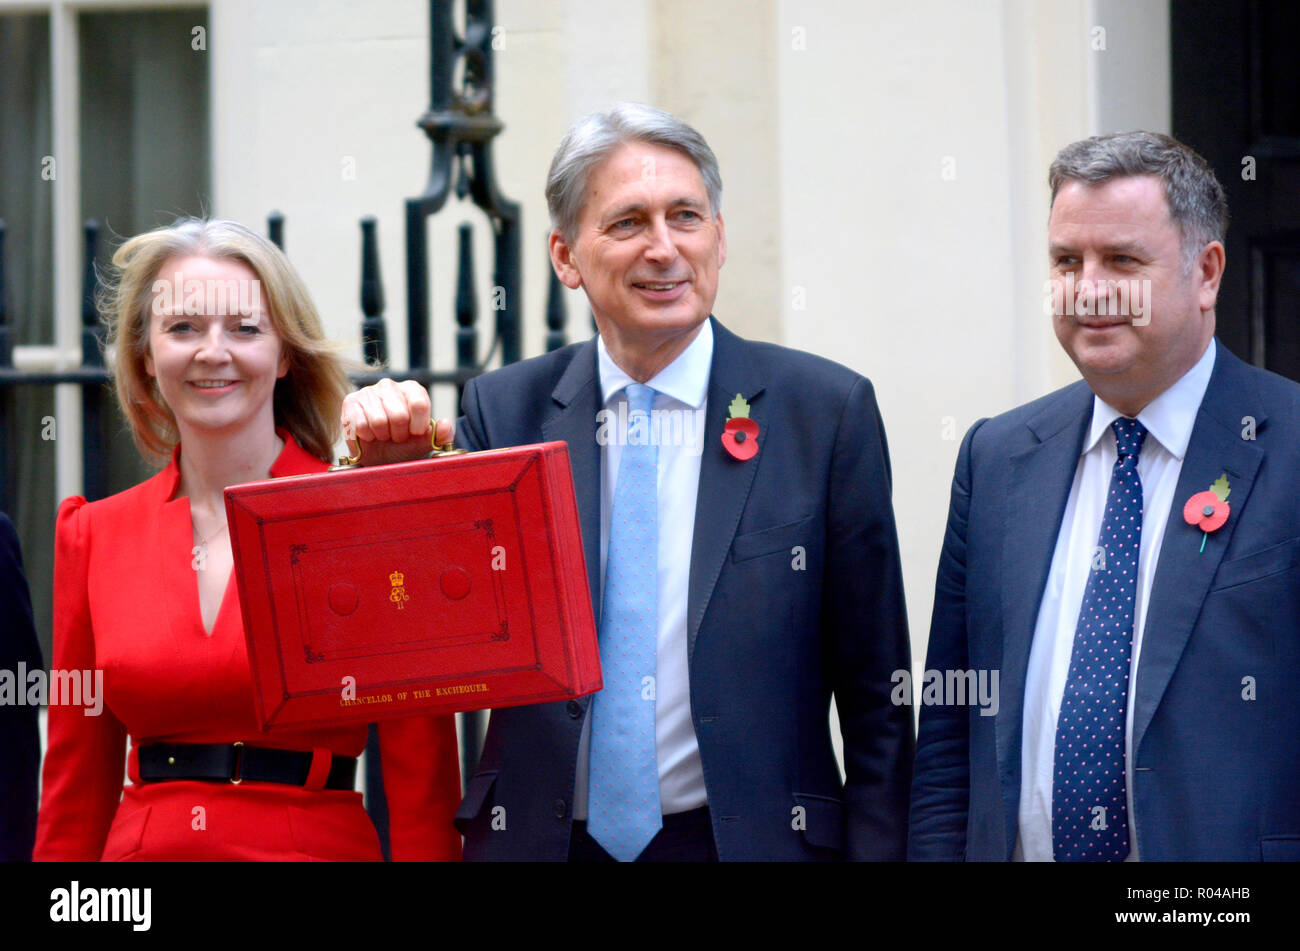 Philip Hammond MP, Chancelier de l'Échiquier, avec Liz Truss, député, et Mel Stride MP, quitter Downing street avant de livrer son budget, le 29 octobe Photo Stock